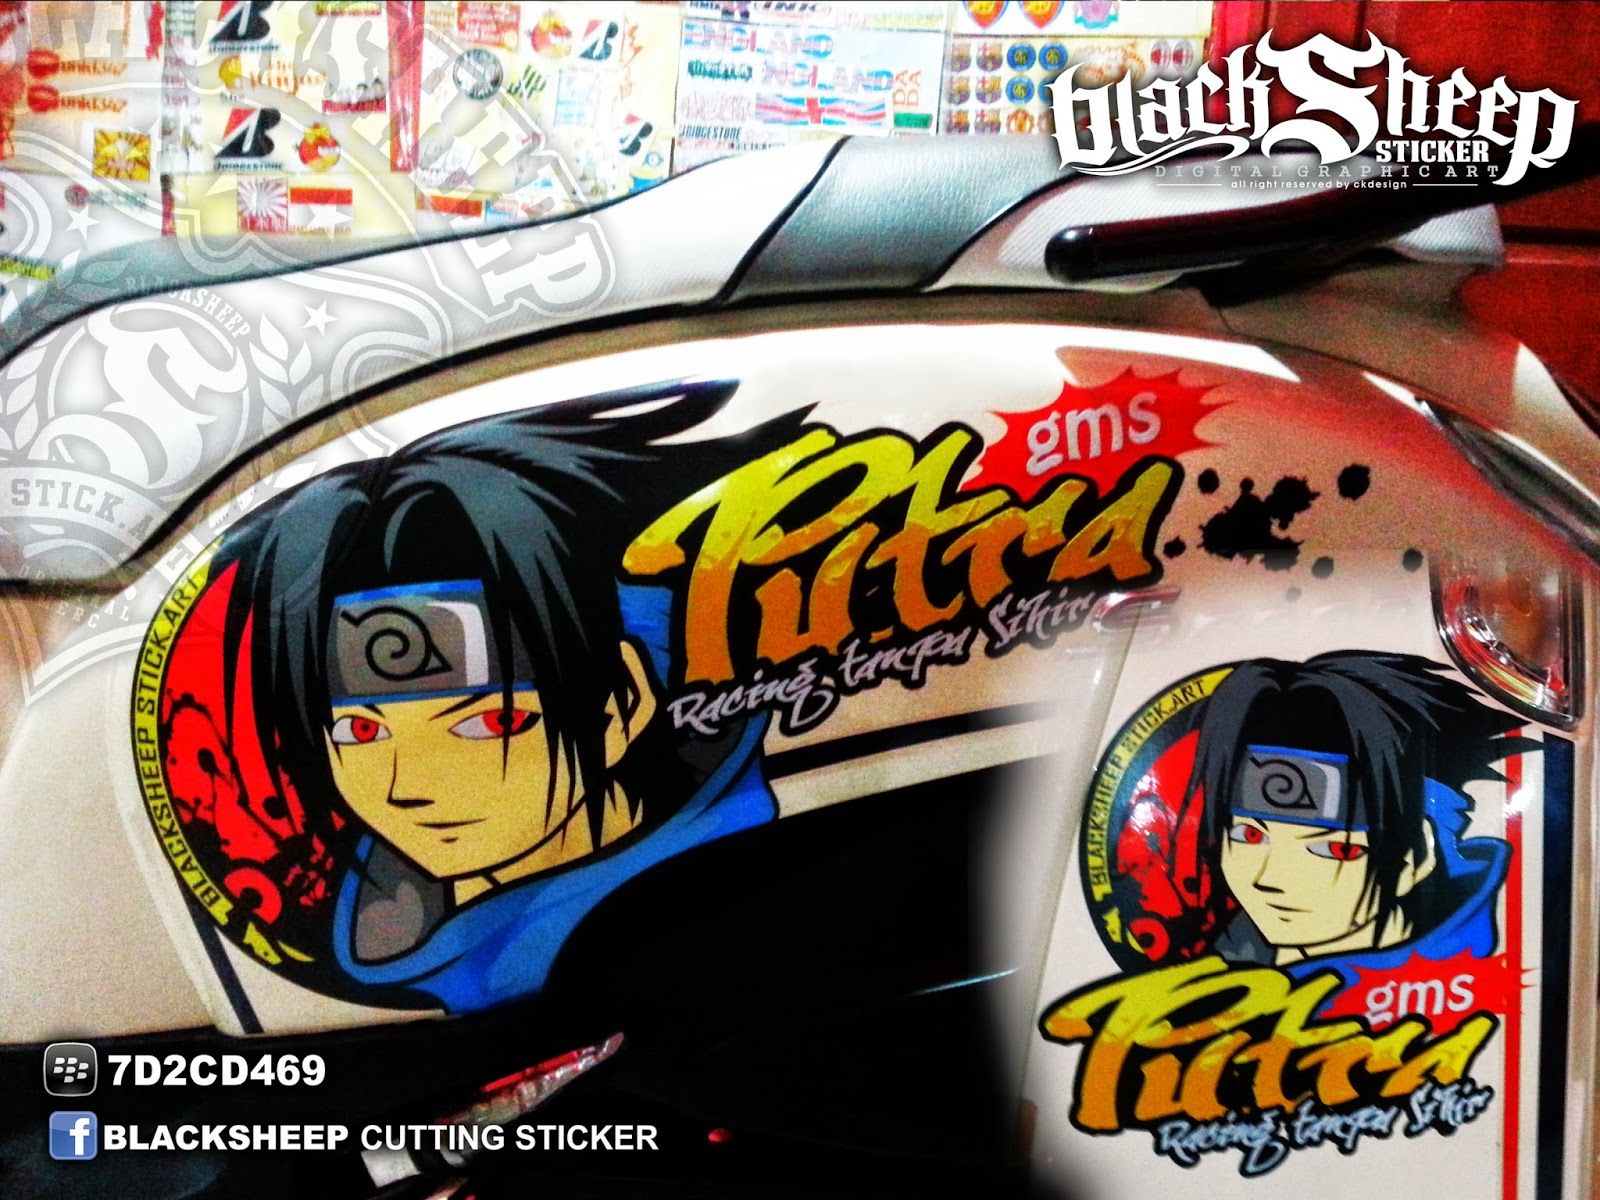 Sticker sasuke cutting sticker